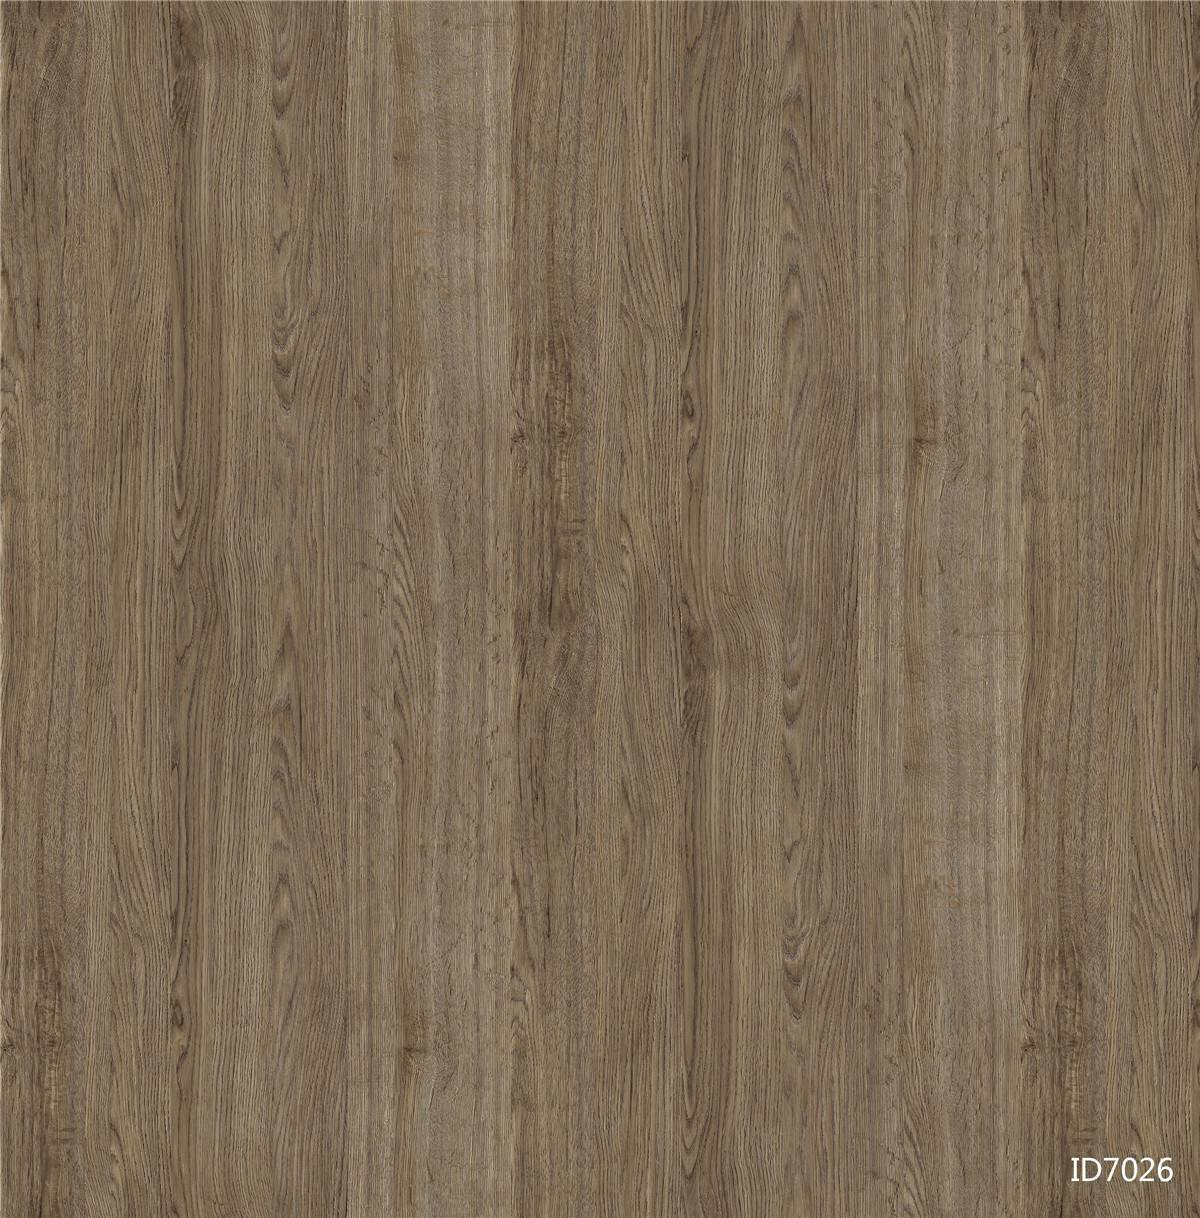 I.DECOR ID7026  Virginia Oak decor paper idecor ID Series 2017 image56